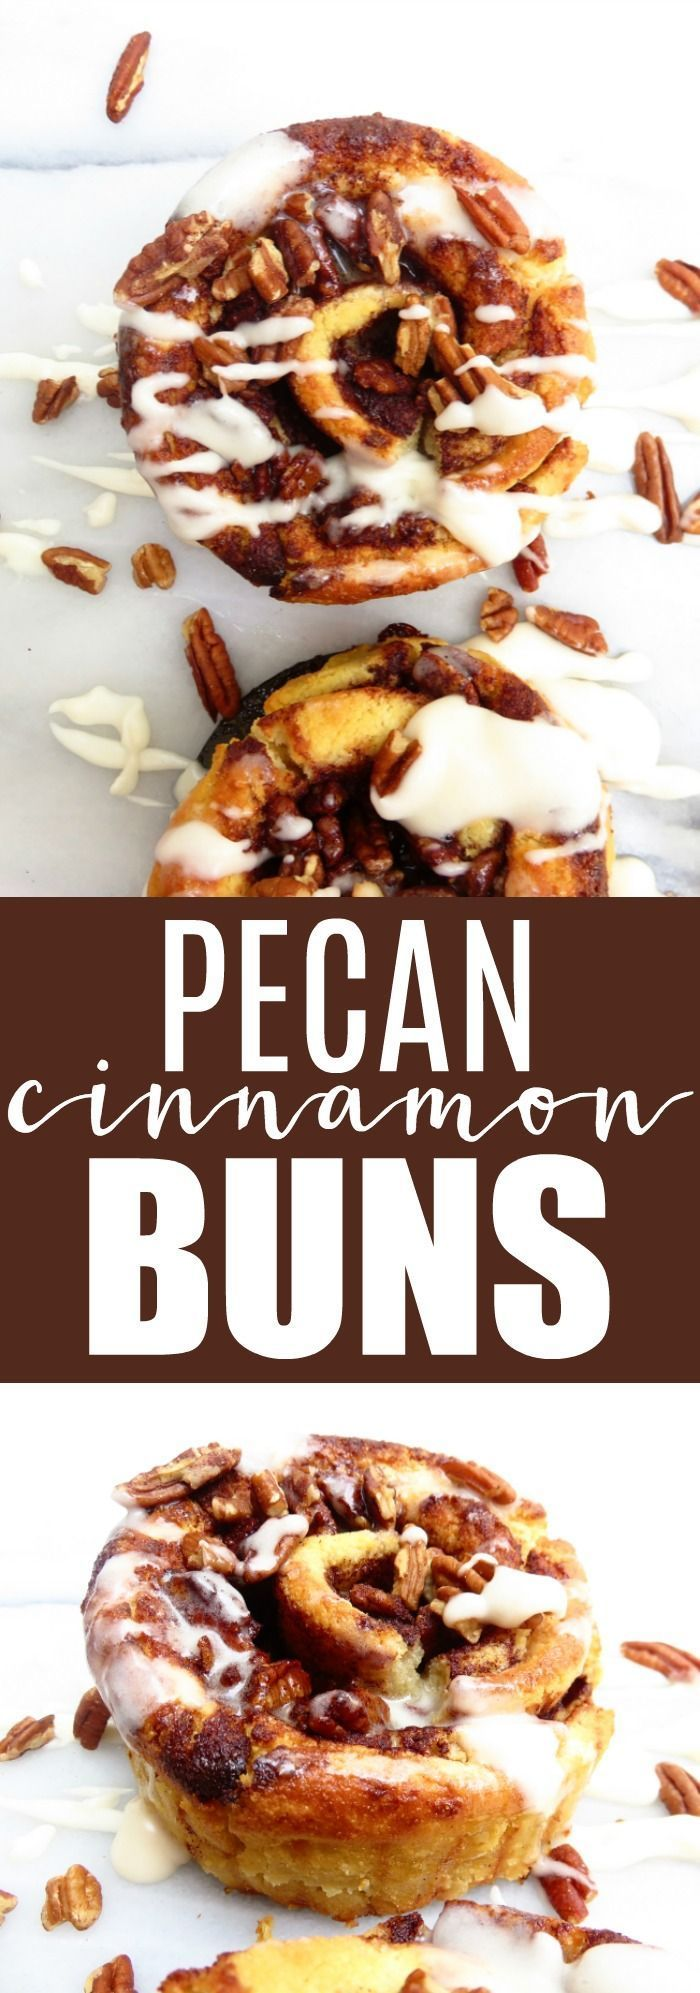 The only cinnamon bun recipe you'll ever need!! These are low(ish) carb, gluten free, and seriously perfect for any brunch occasion! thetoastedpinenut.com